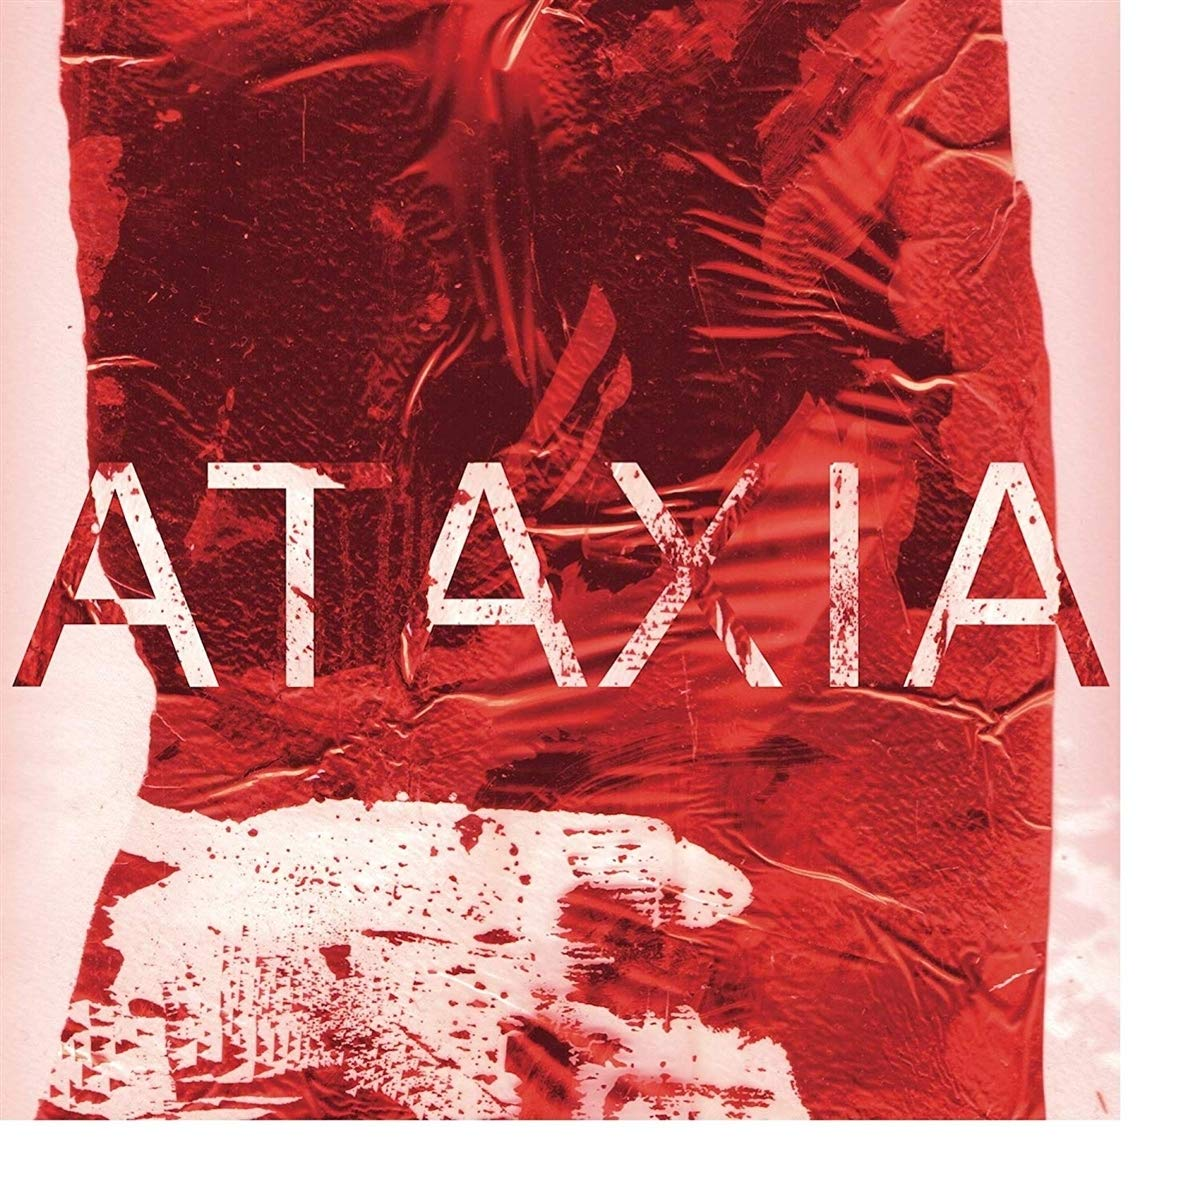 CD : Rian Treanor - Ataxia (CD)